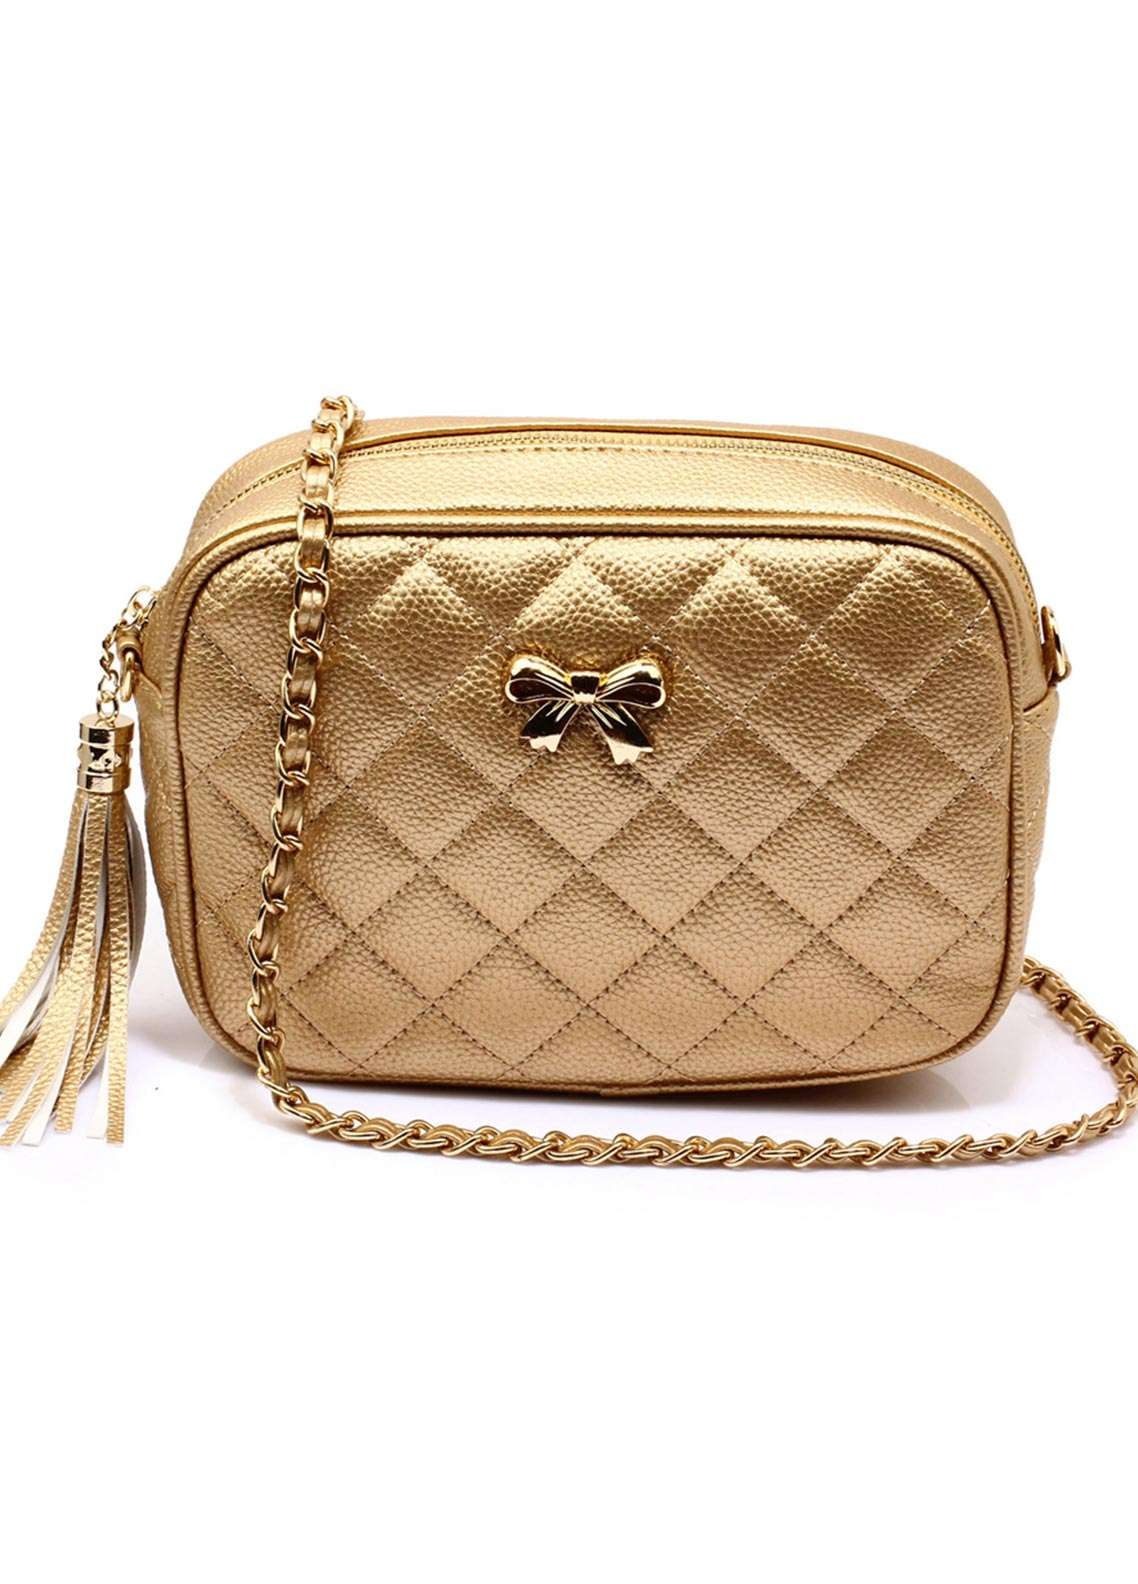 Anna Grace London Faux Leather Shoulder Bags  for Women  Gold with Quilted Texture